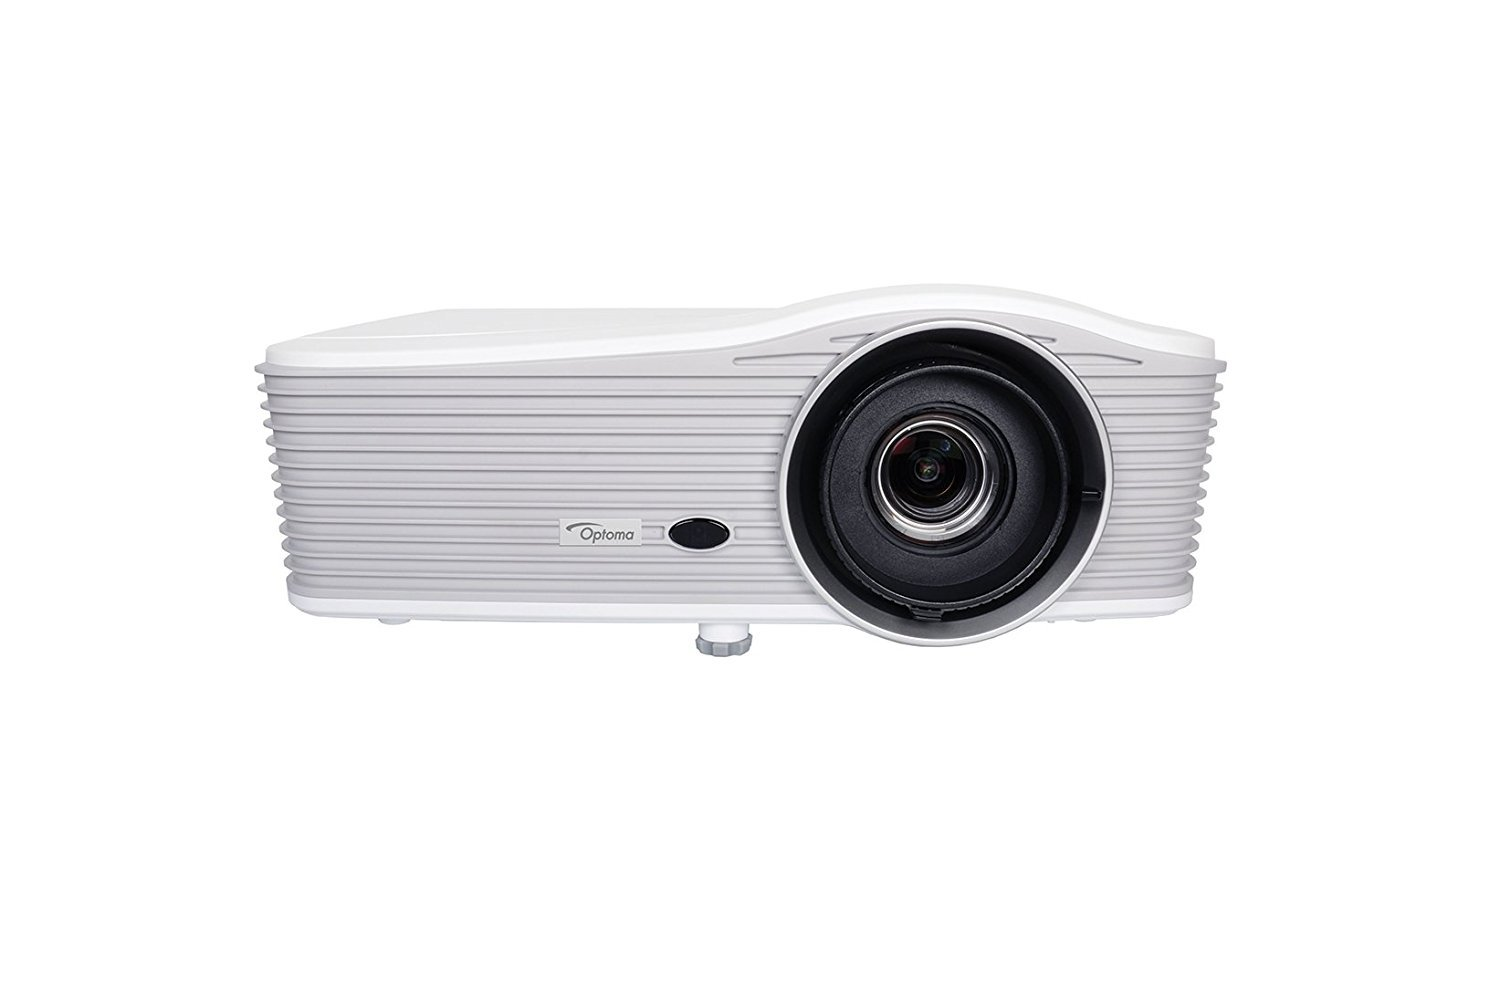 Optoma W515 Video - Proyector (6000 lúmenes ANSI, DLP, WXGA (1280x800), 10000:1, 16:10, 627,4 - 7688,6 mm (24.7 - 302.7